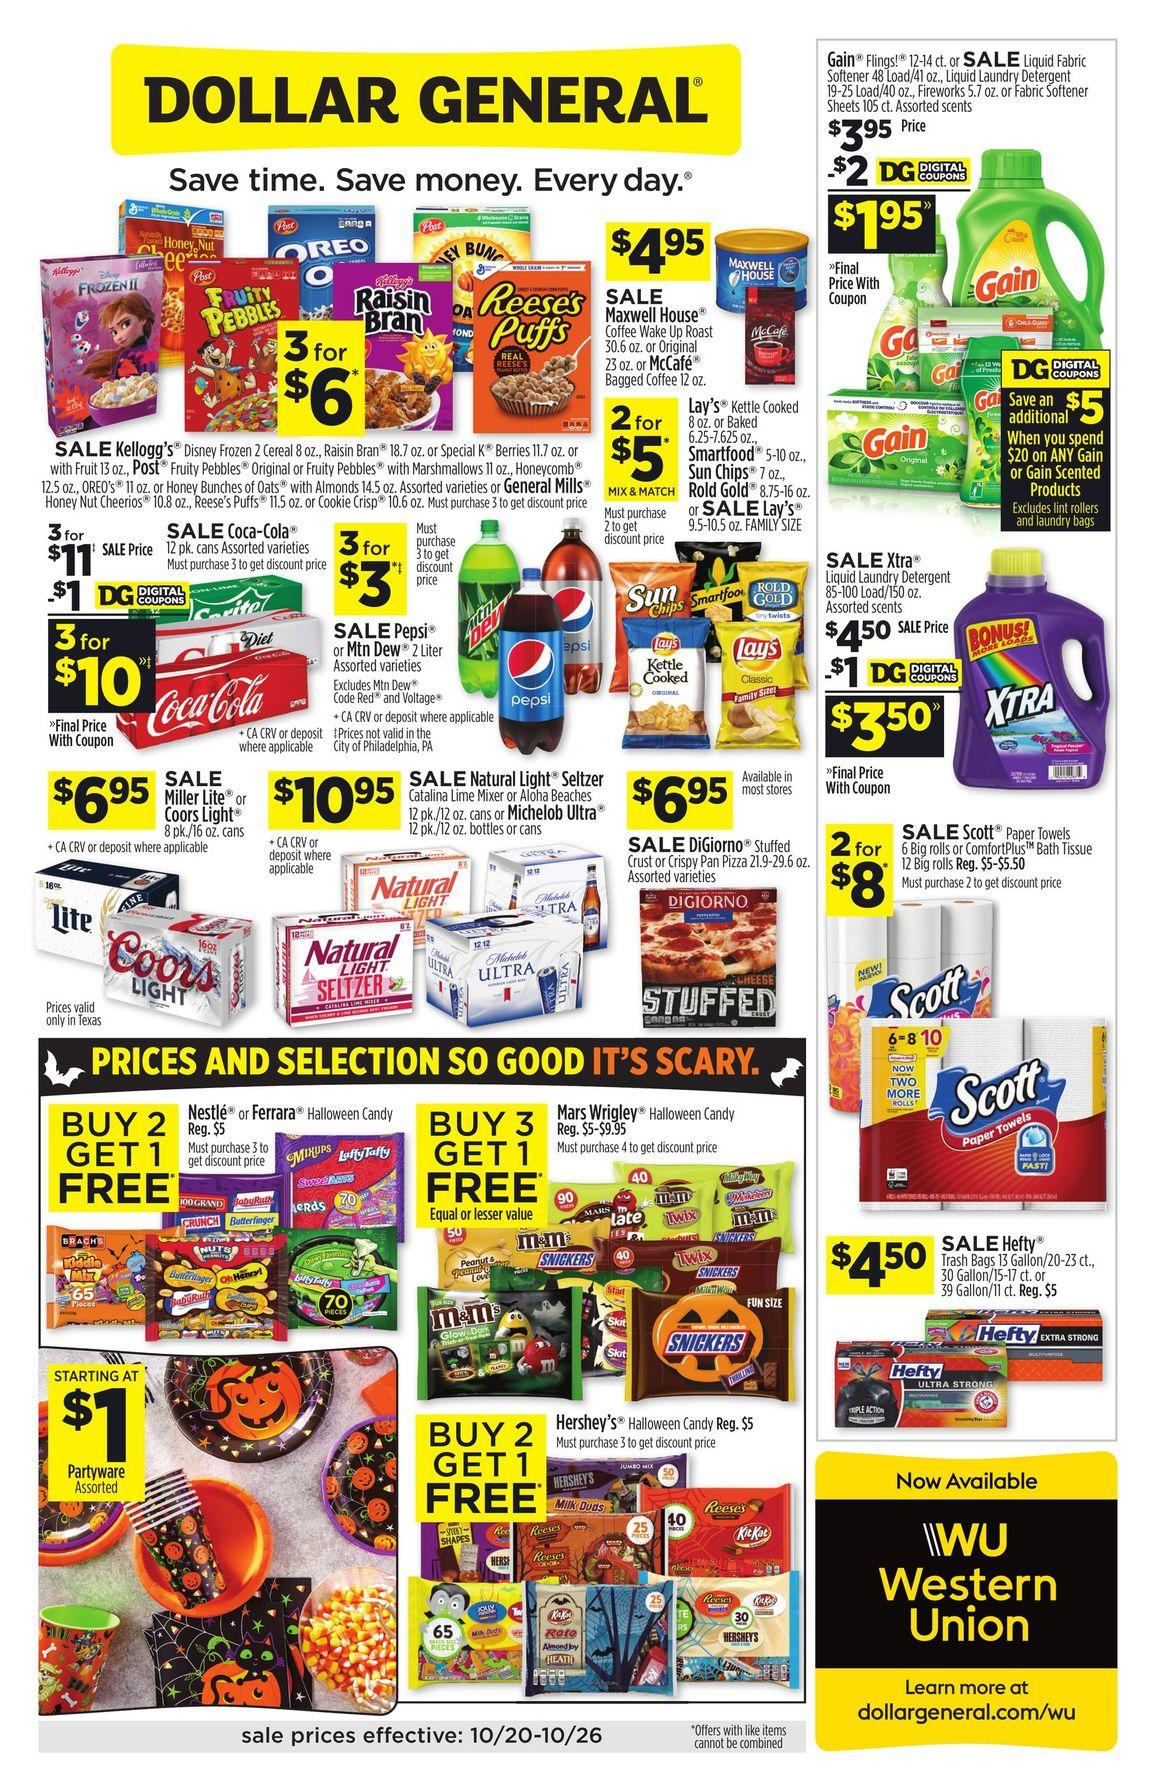 Dollar General Weekly October 20 - 26, 2019 Page 1